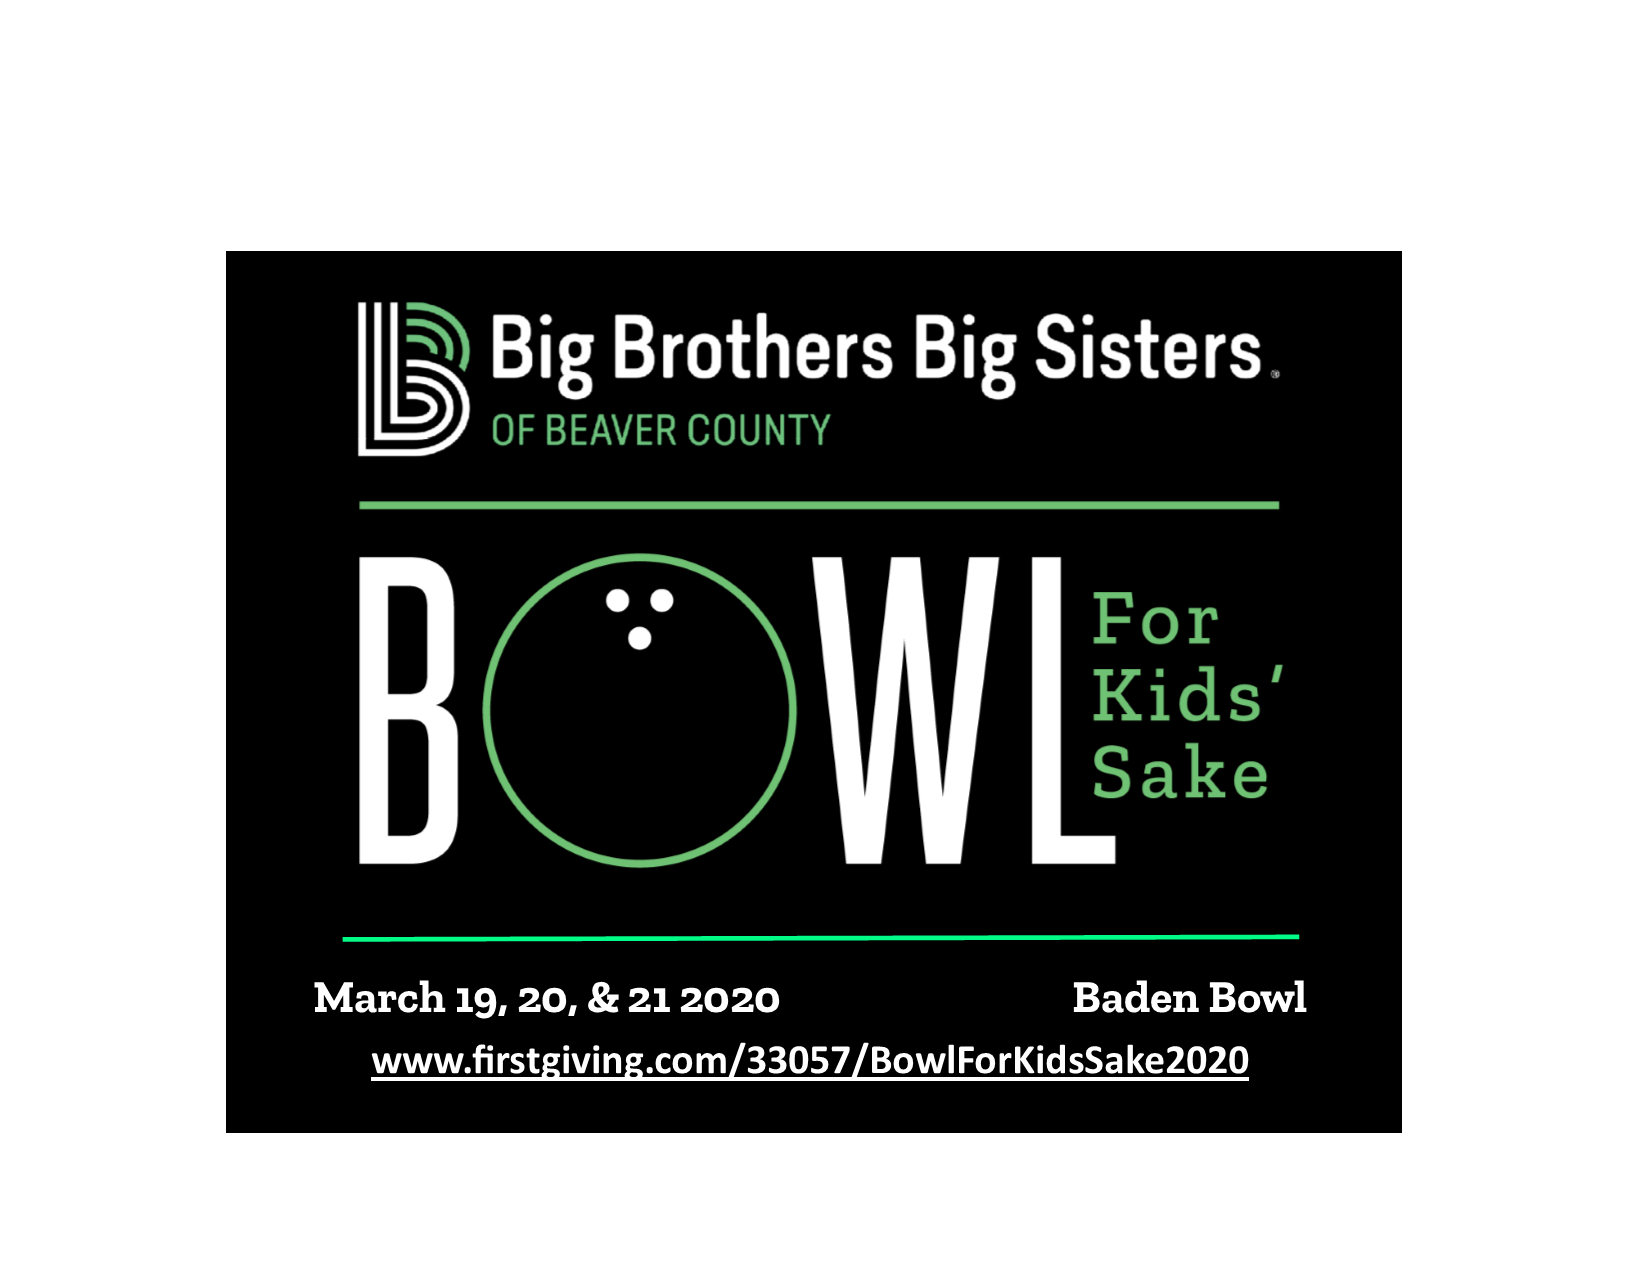 Bowl For Kids' Sake 2020